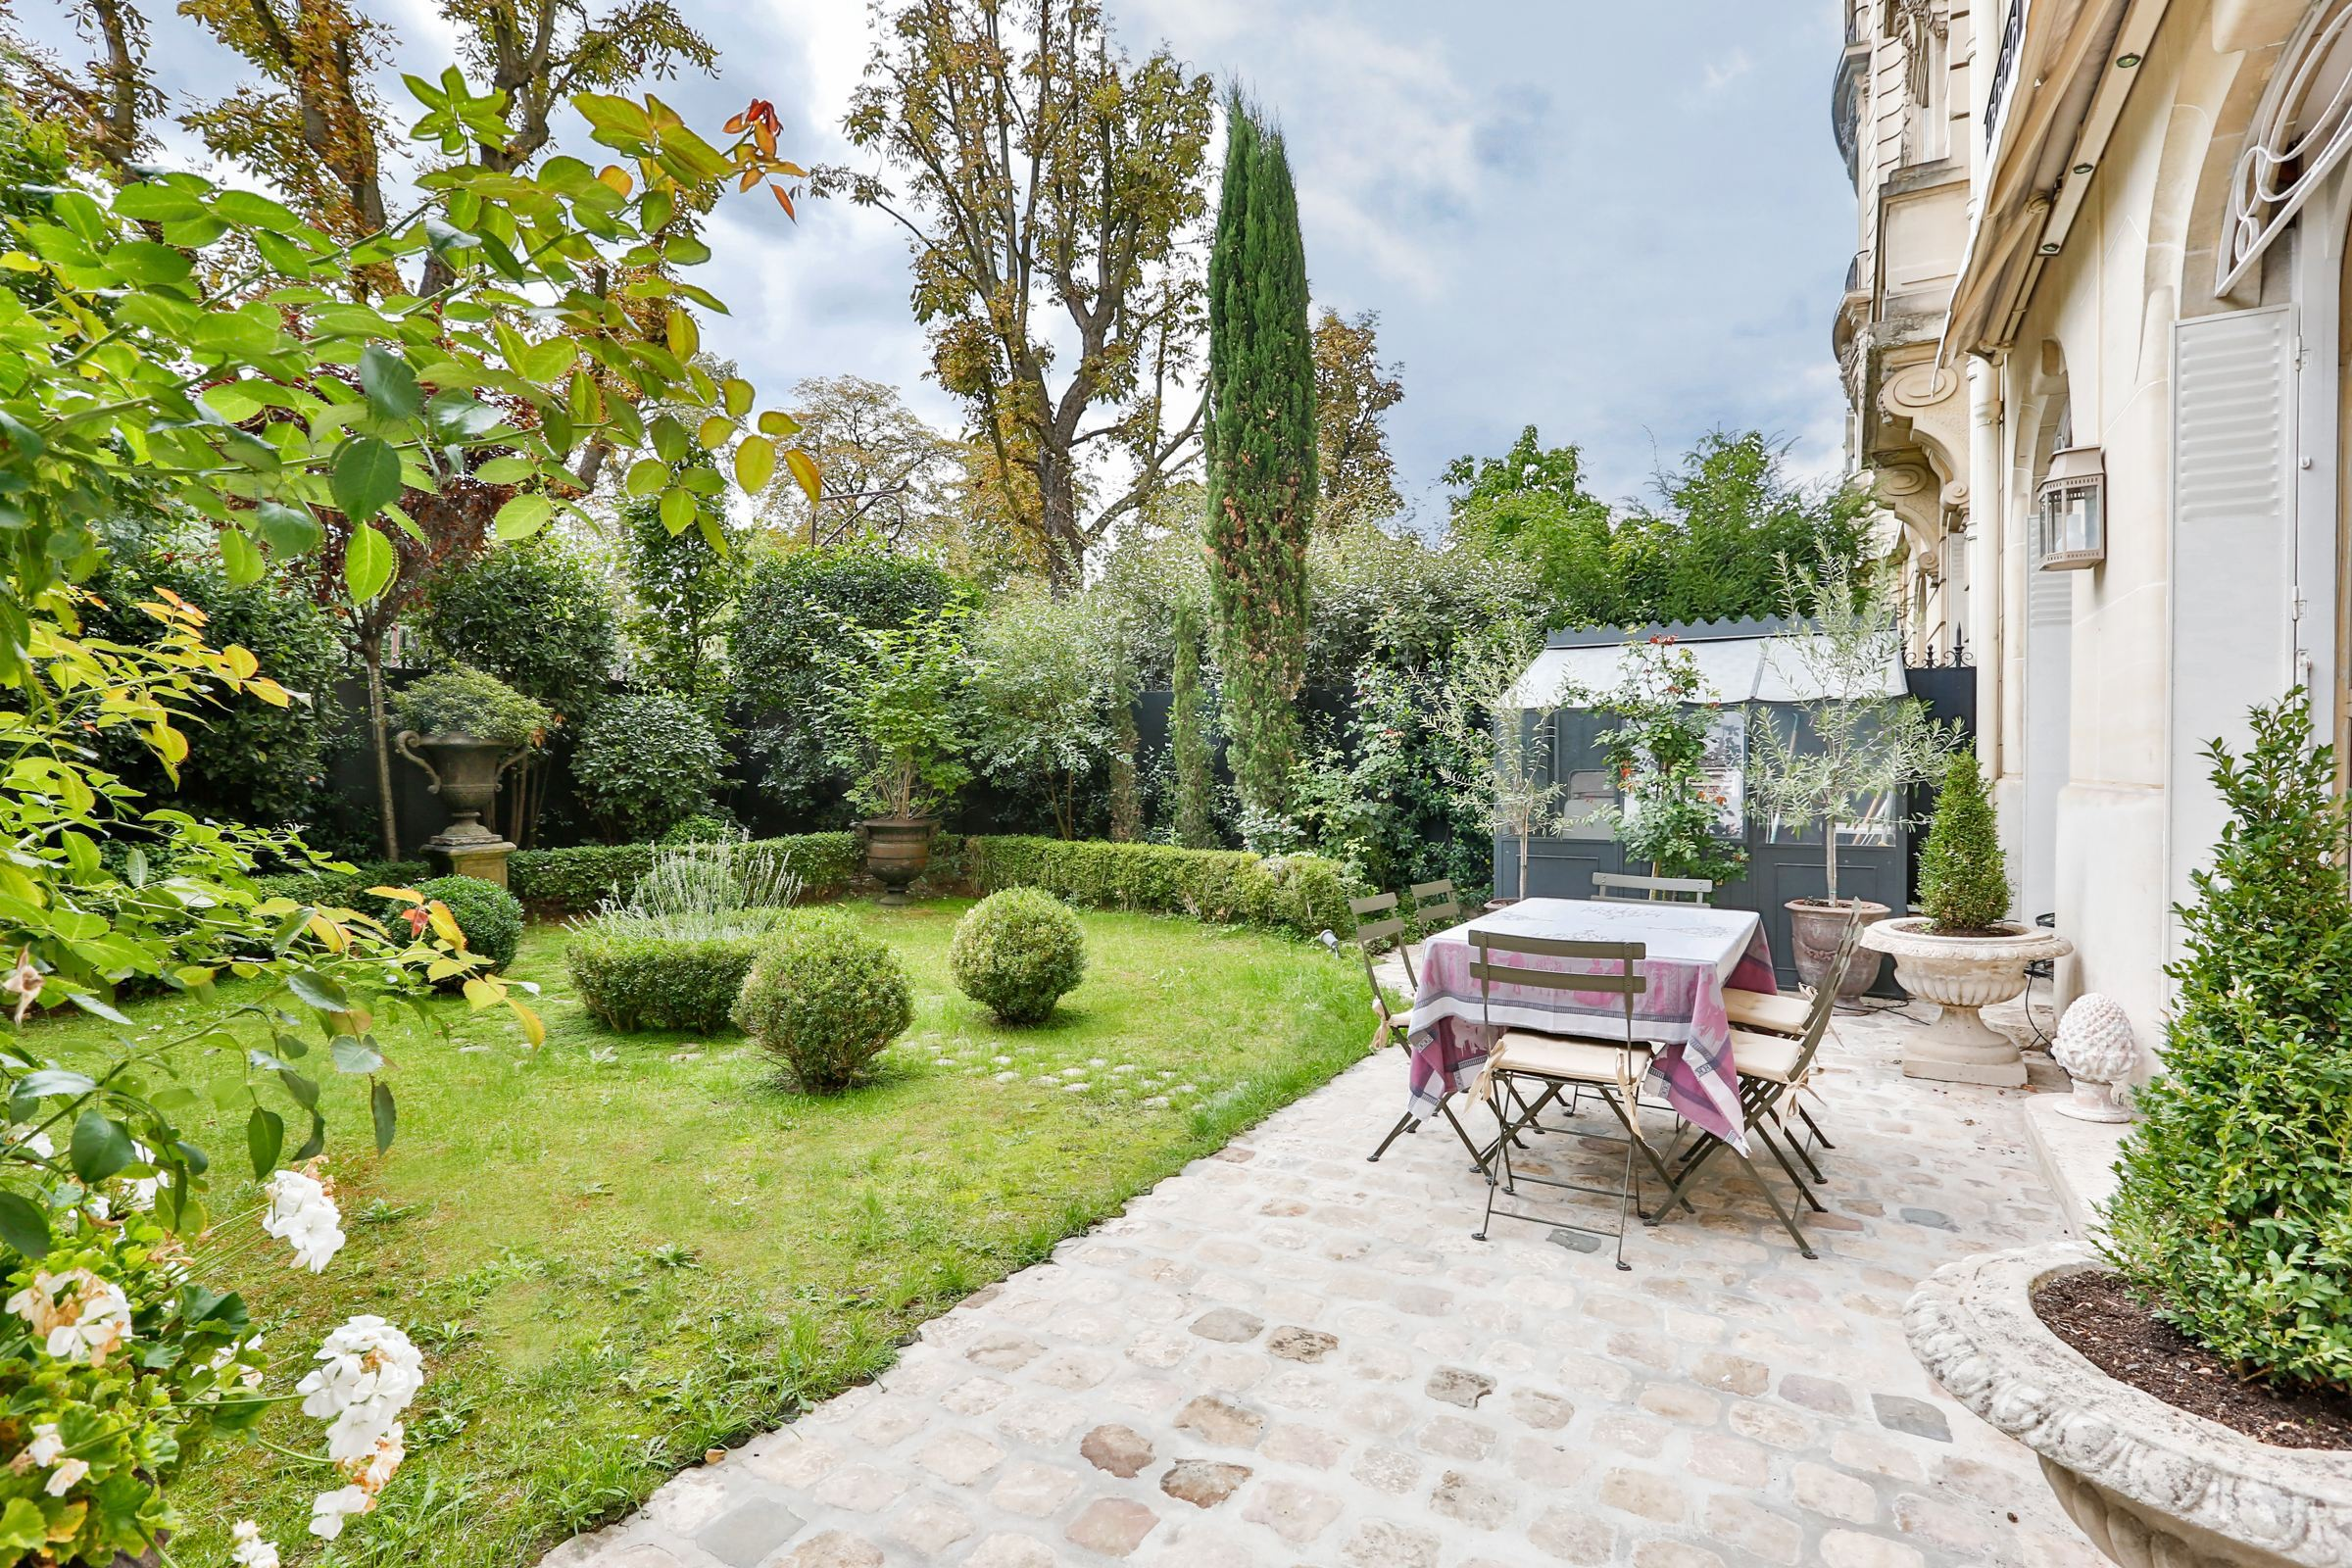 sales property at Neuilly - A 187 sq.m apartment + a 100 sq.m garden